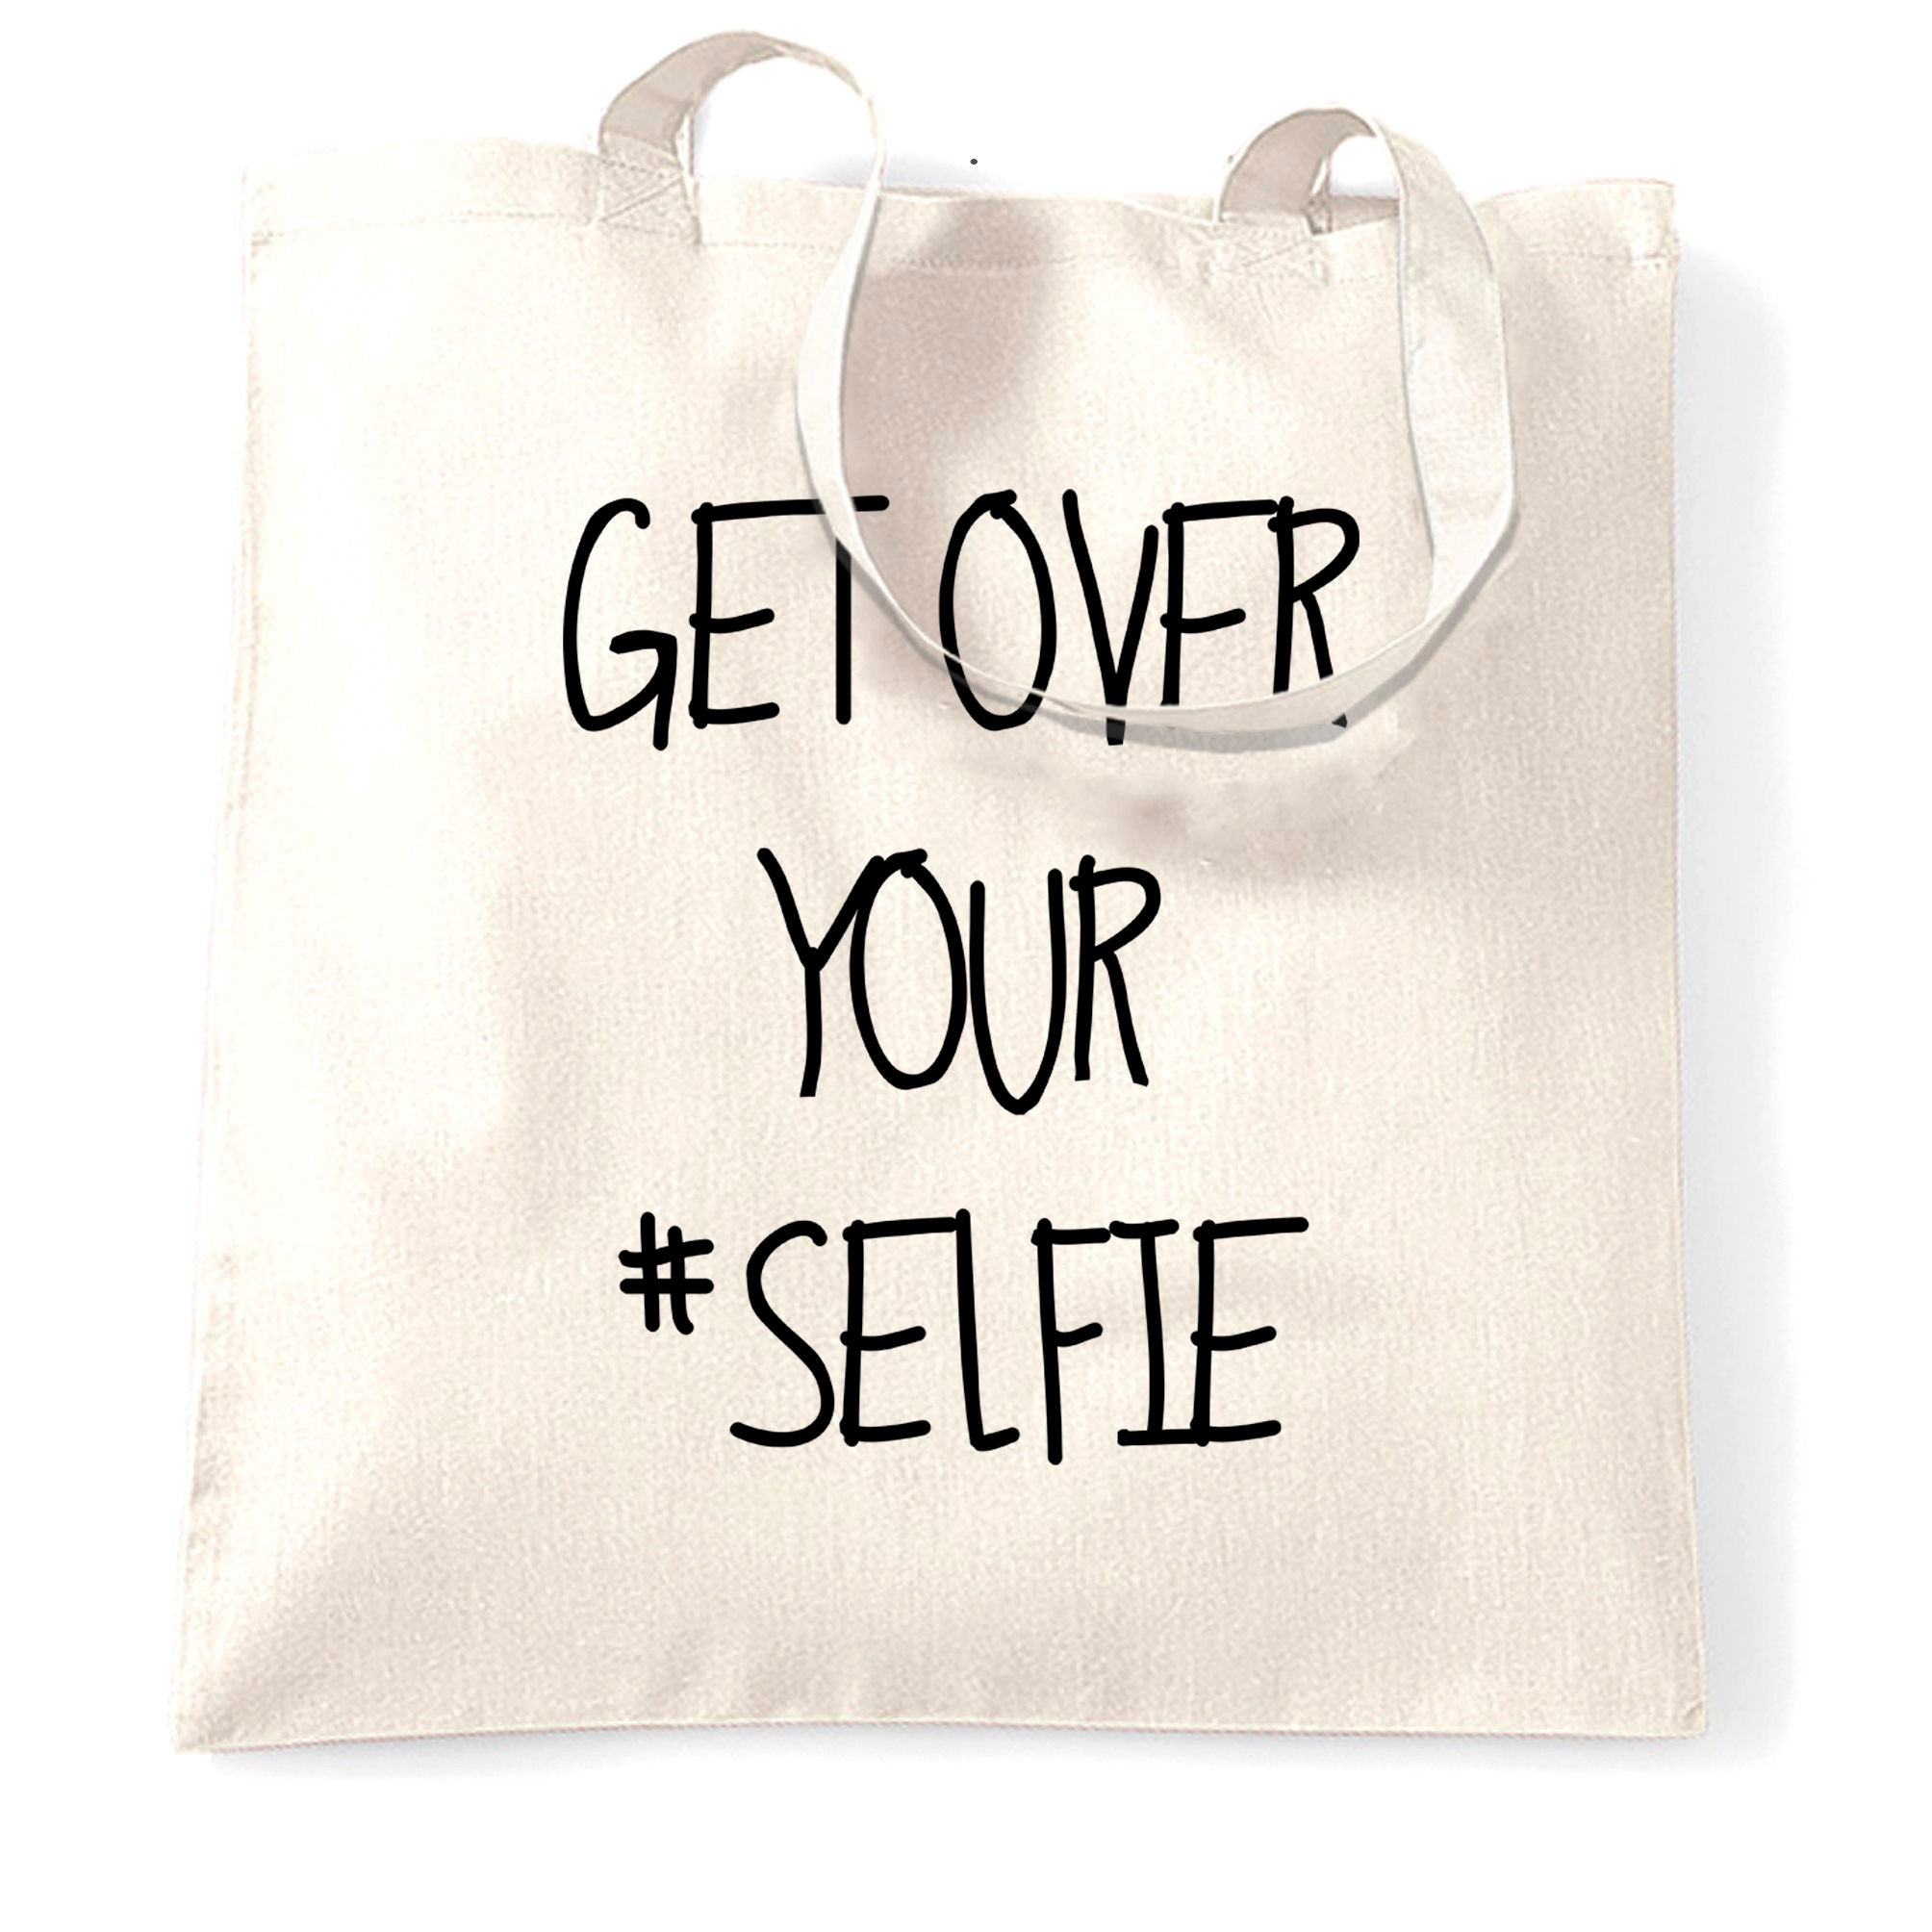 Get Over Yourself Selfie Tote Bag